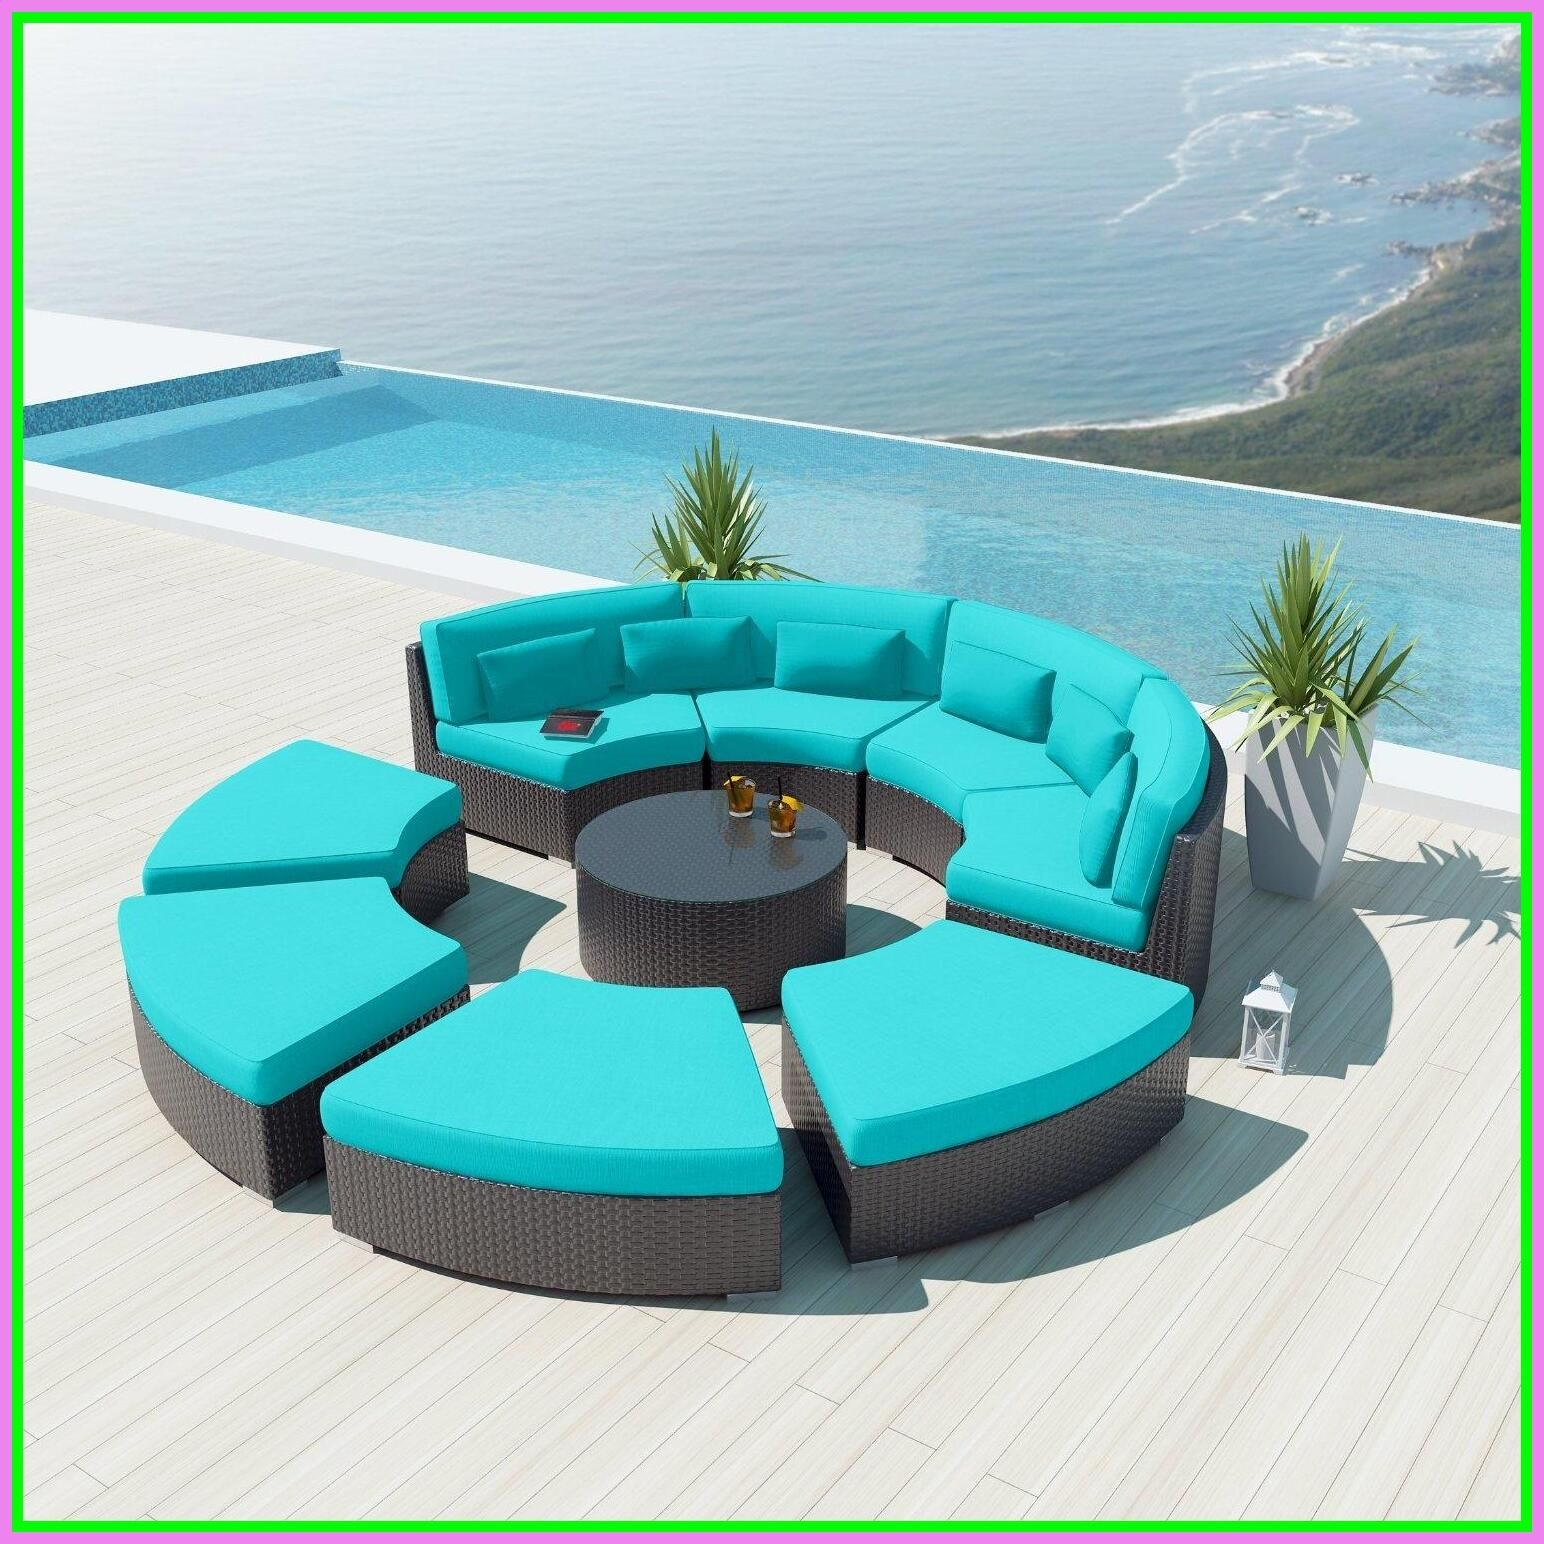 NEW Uduka 9pcs Outdoor Round Sectional Patio Furniture Espresso Brown  Wicker Sofa Set Turquoise All Weather